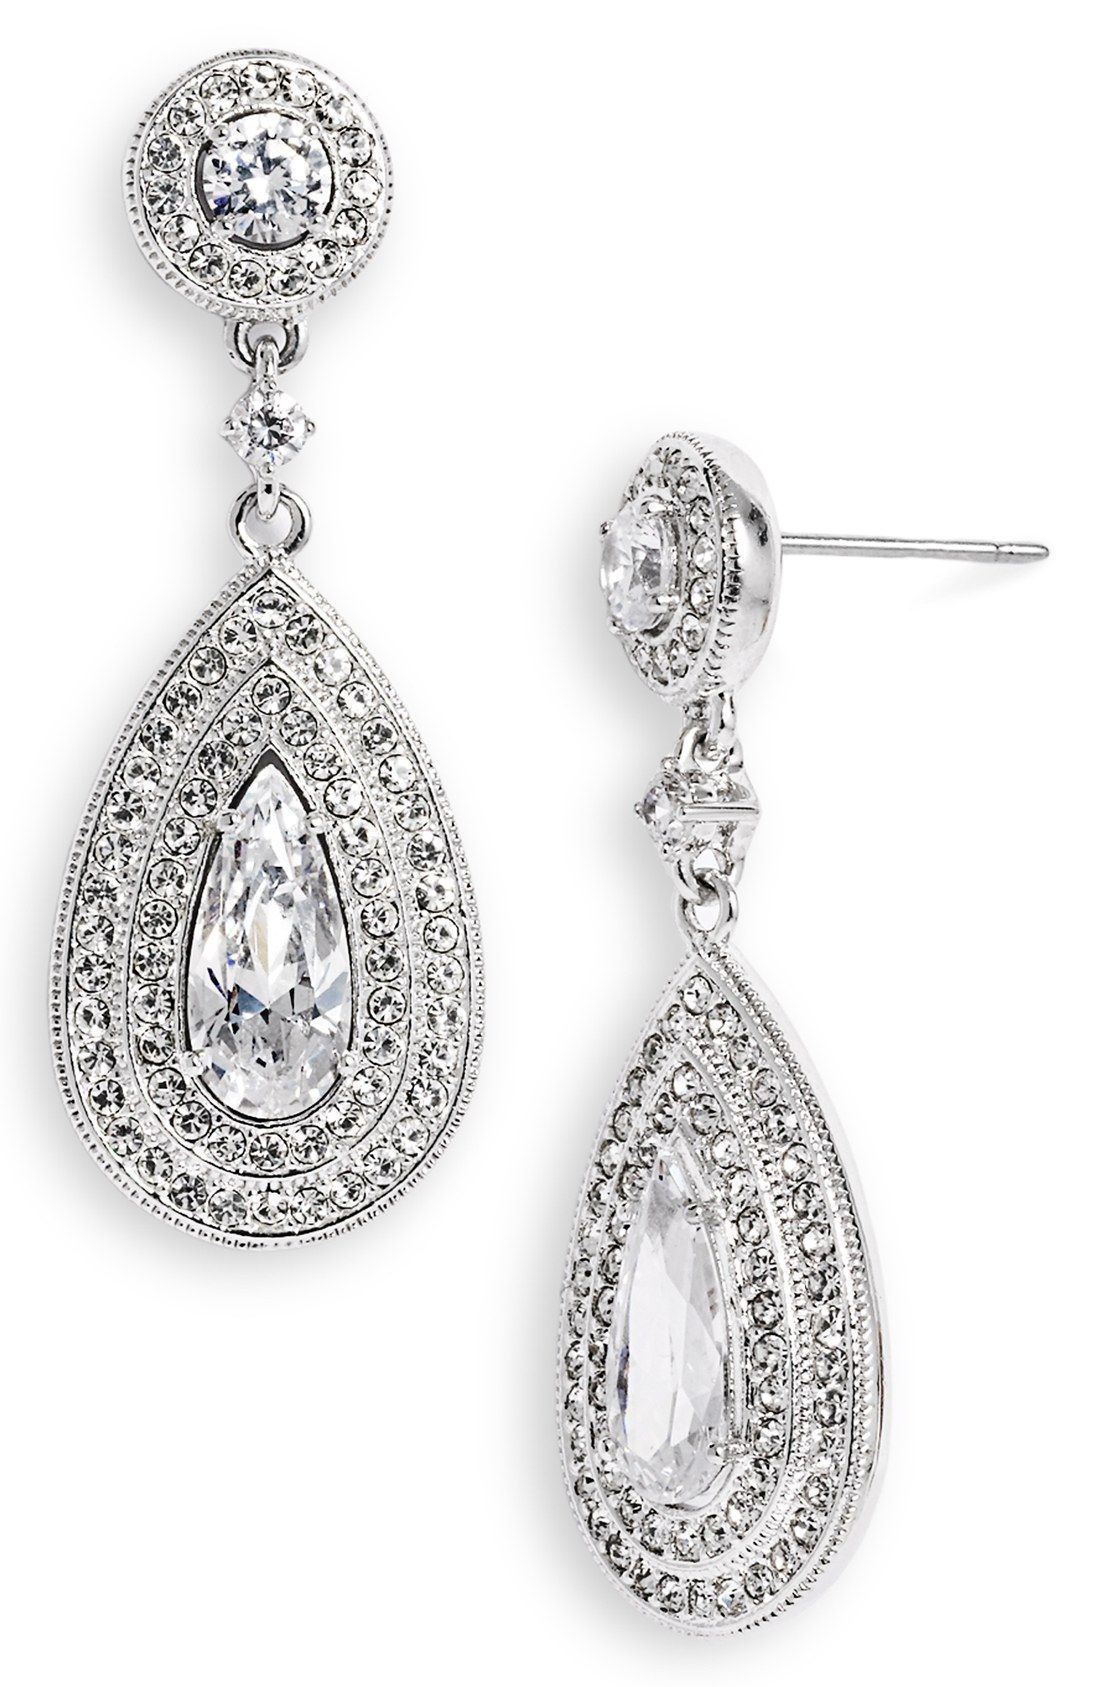 day earrings bridal set cassandra collections vintage wedding lynne rose and pave gold teardrop marquise in cz